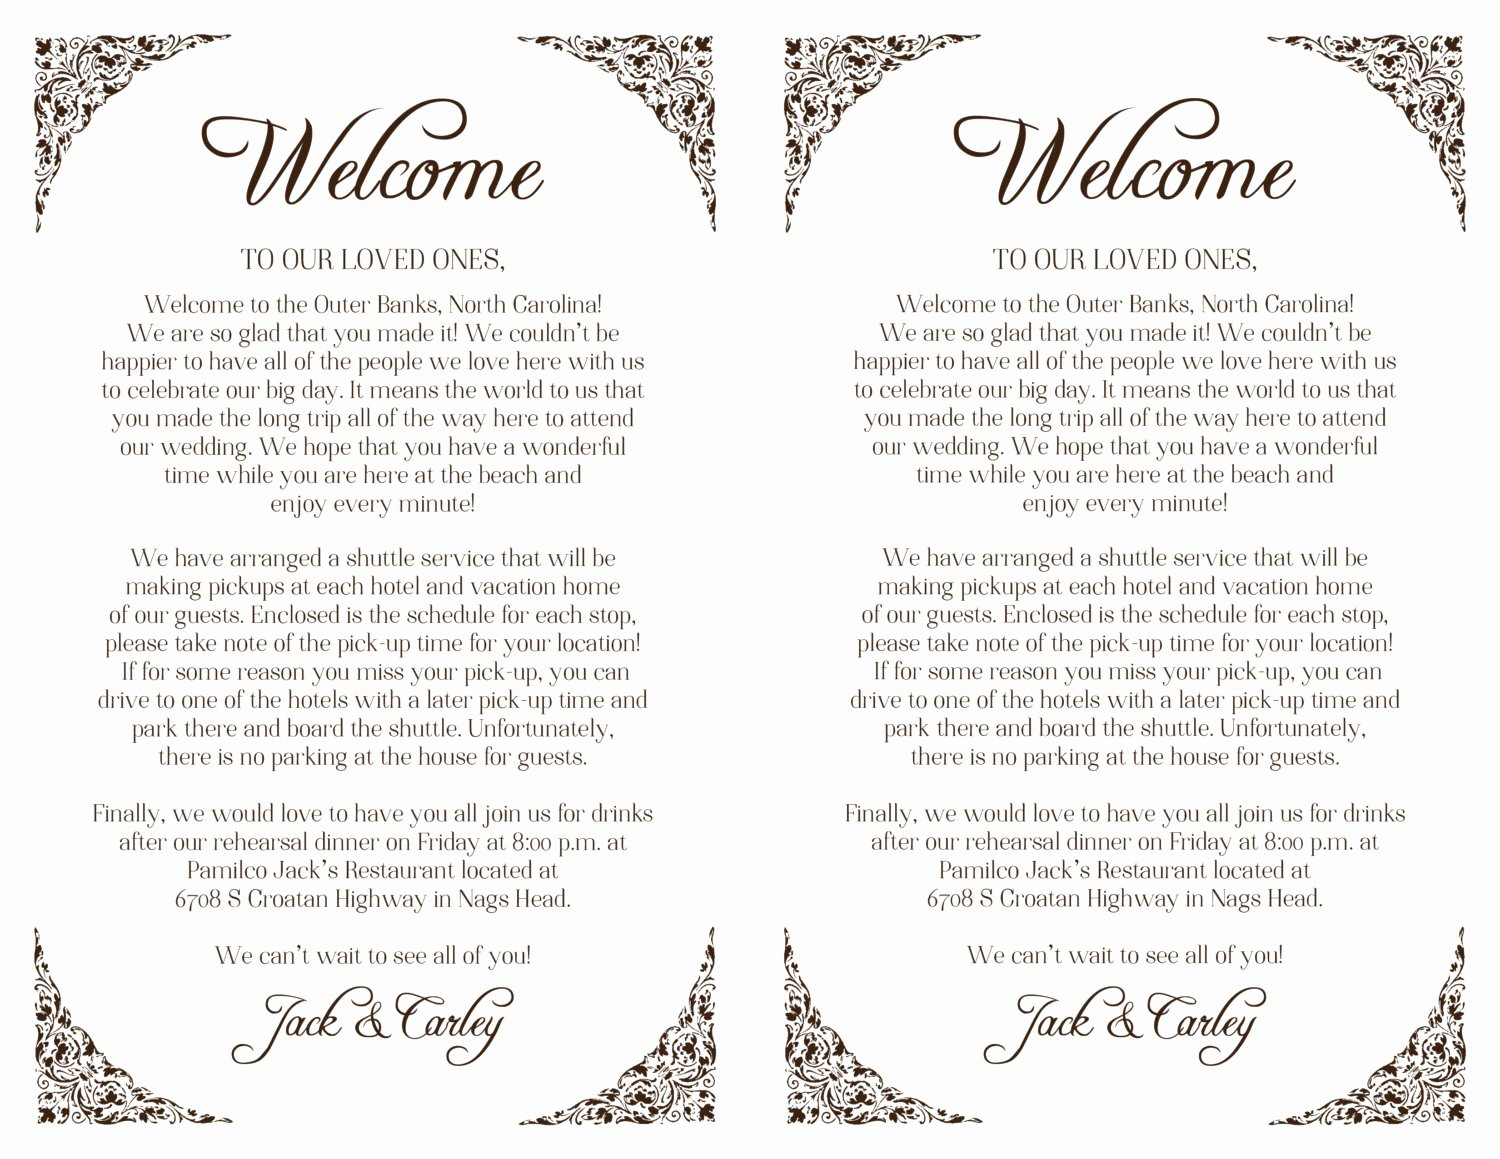 Sample Wedding Welcome Letter New Custom Wedding Wel E Letter Floral Border Printable Diy